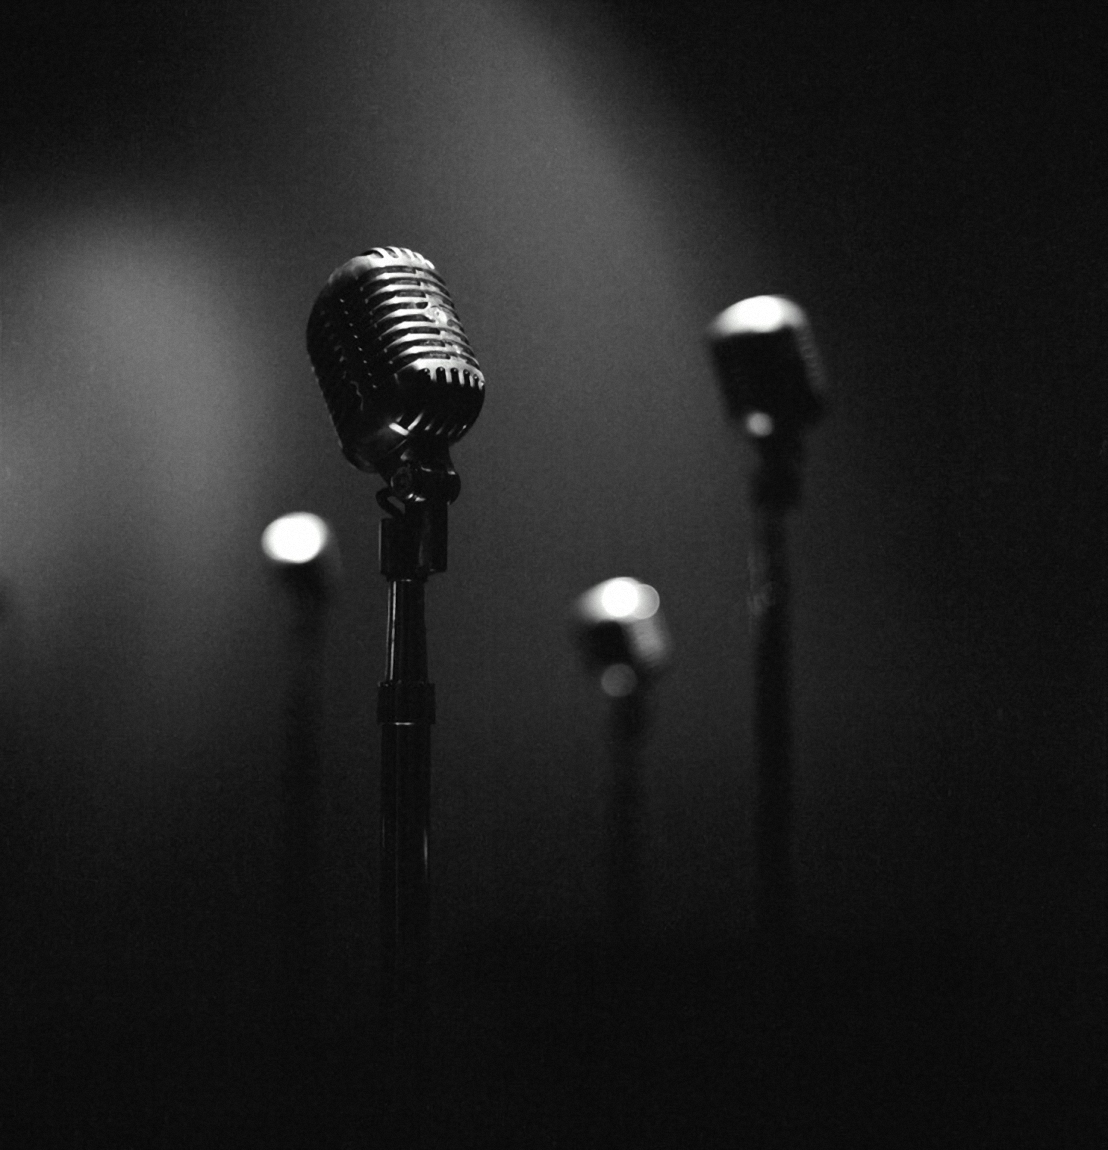 Black And White Microphone Photography 4